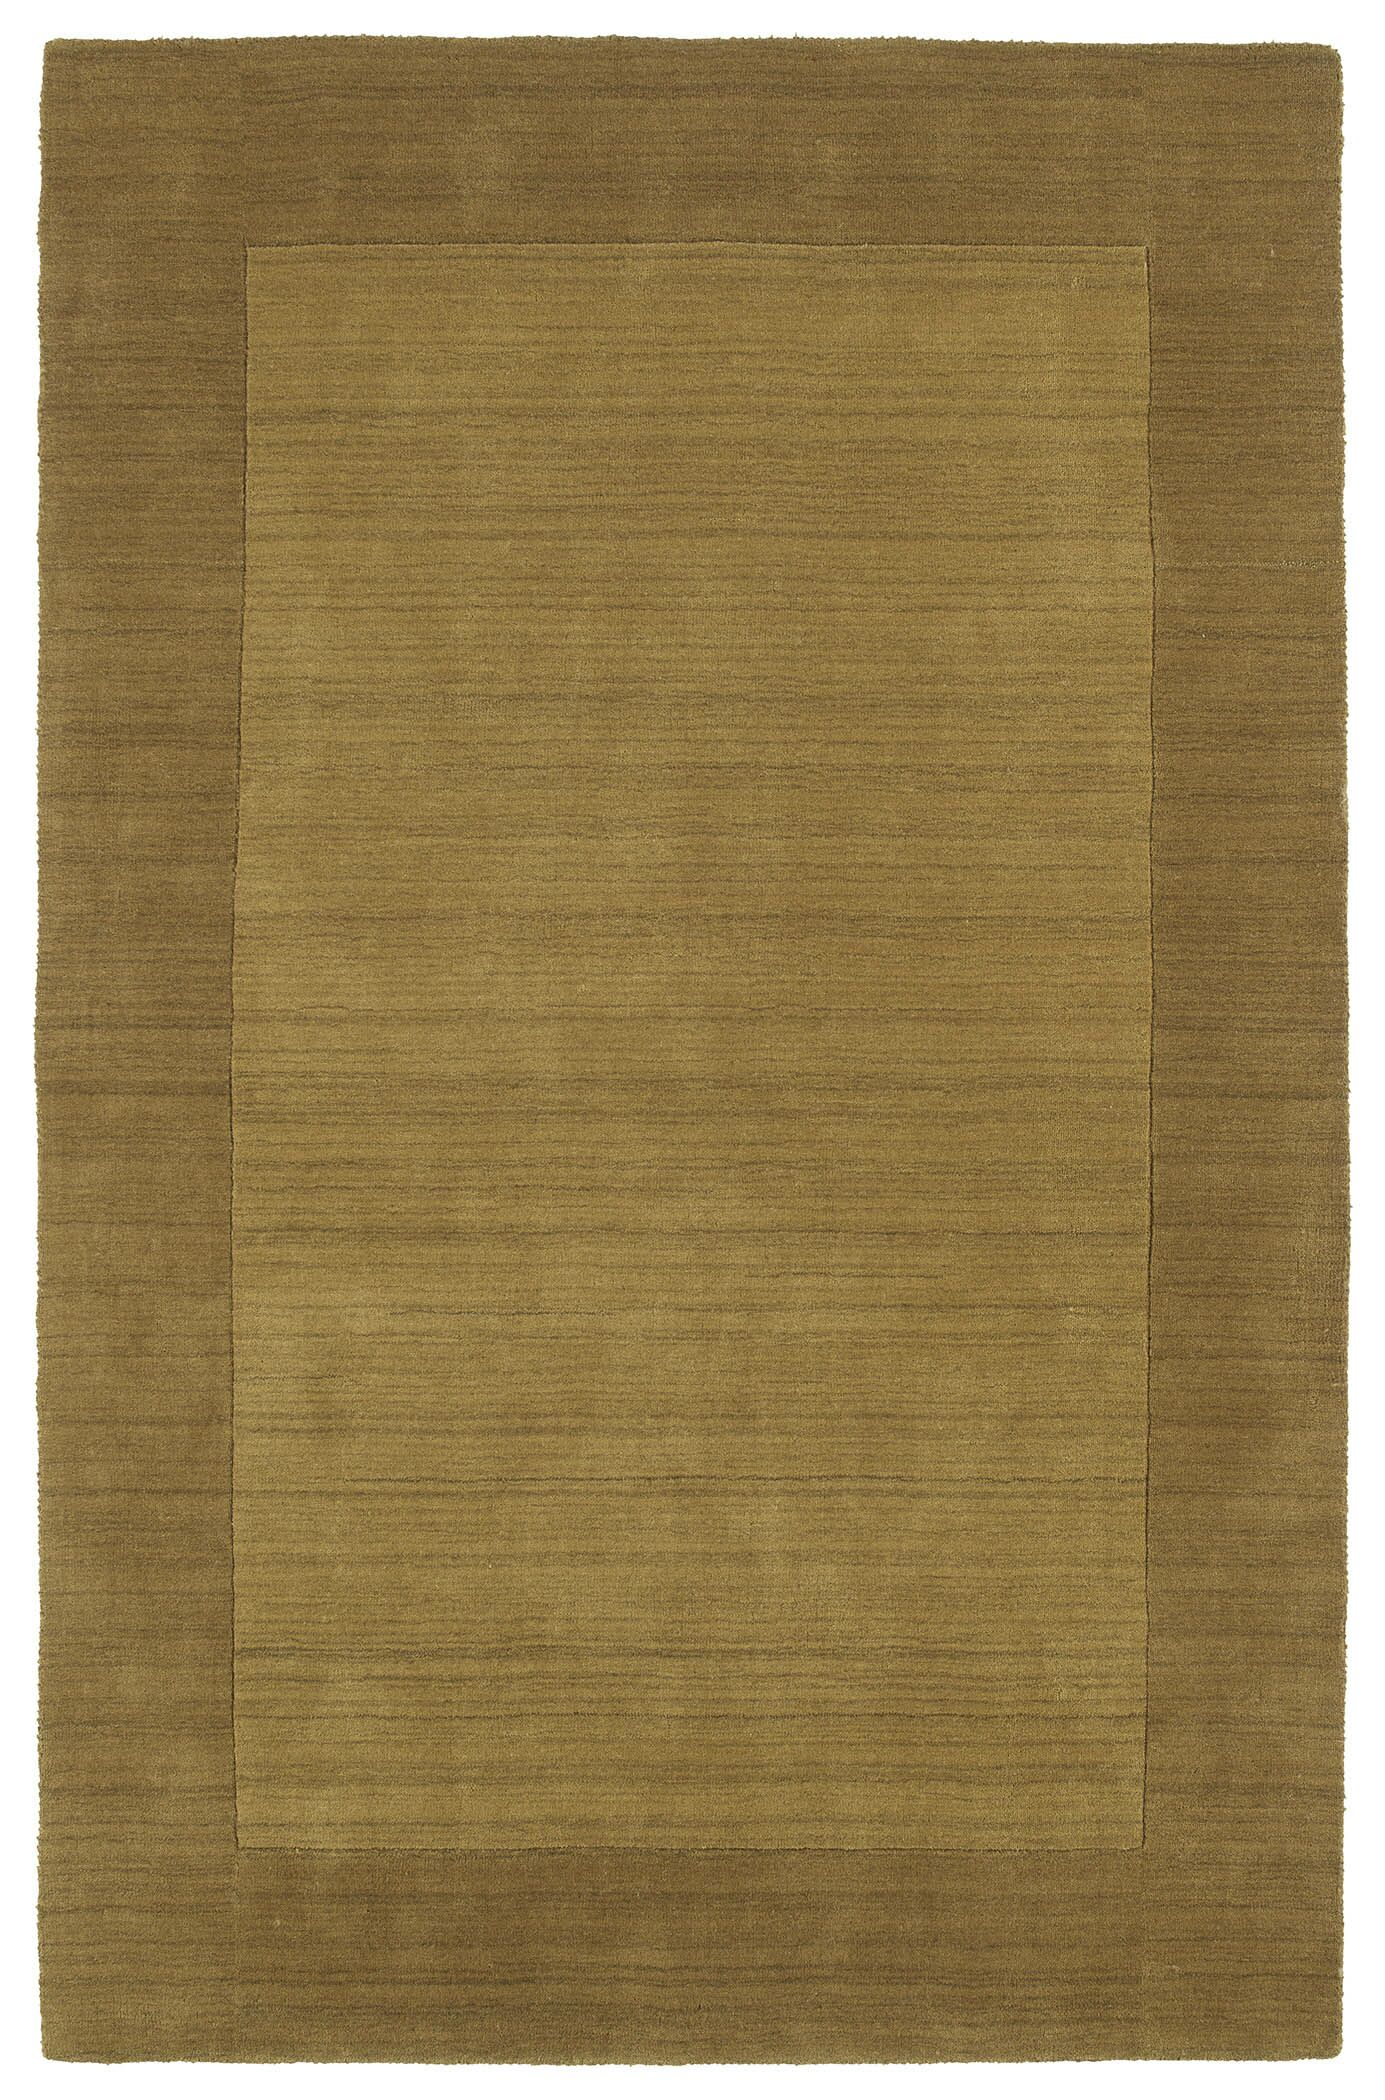 Attles Solid Kids Yellow Rug Rug Size: Rectangle 3'6